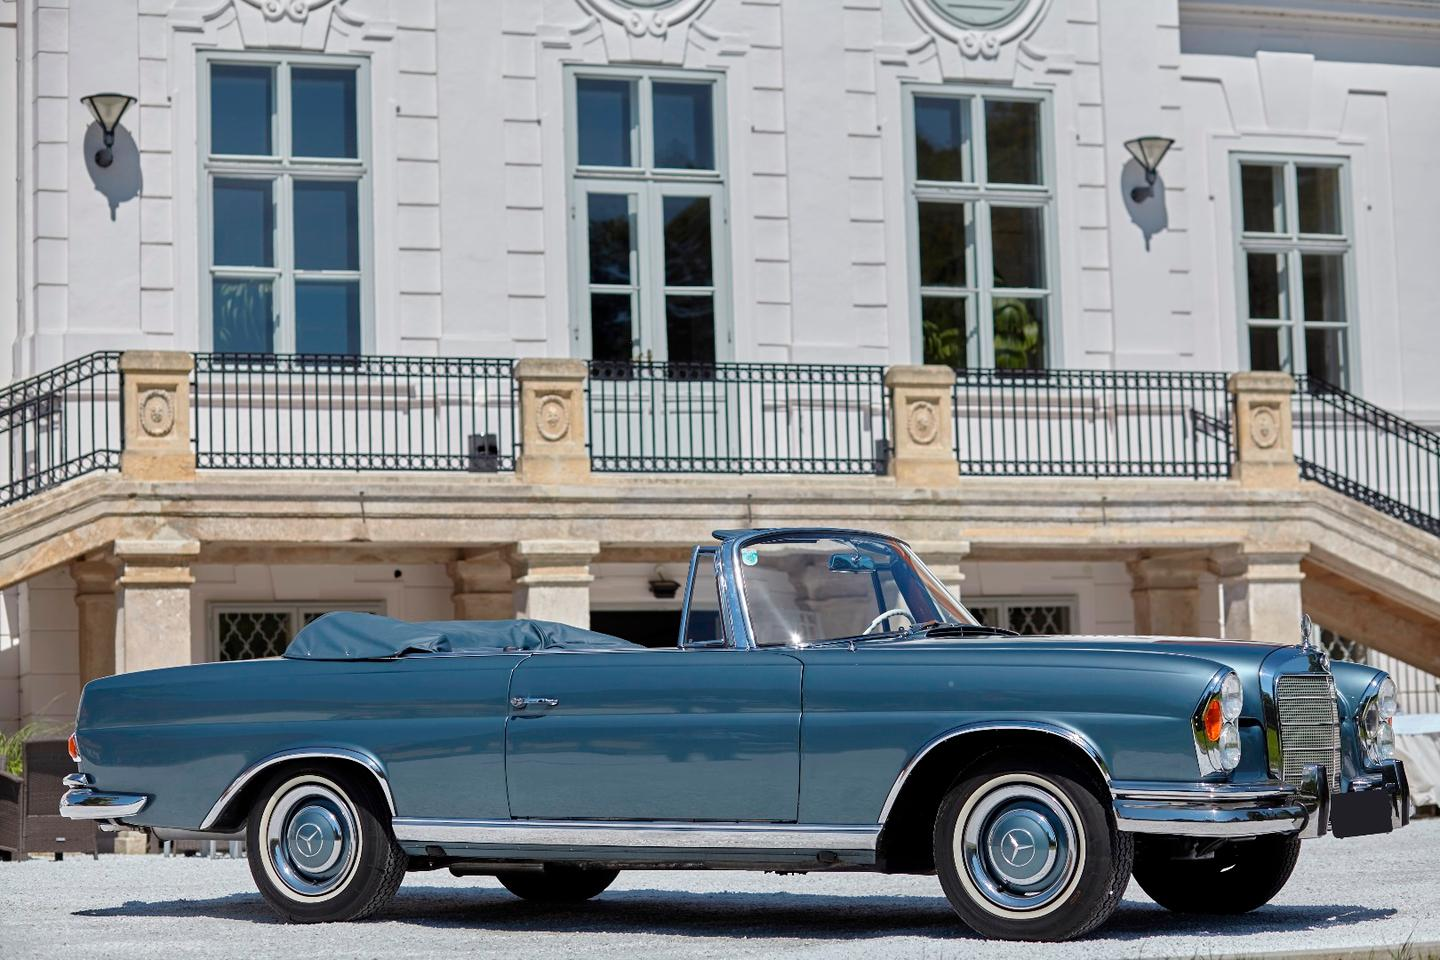 Artcurial Monaco July 2, 2017 Auction: With only 708 units built, this 1965 Mercedes-Benz 300 SE Cabriolet was delivered new to the United States before being acquired, taken to Europe, fully restored and registered in Monaco for the owner's use on the French Riviera. Auction Description